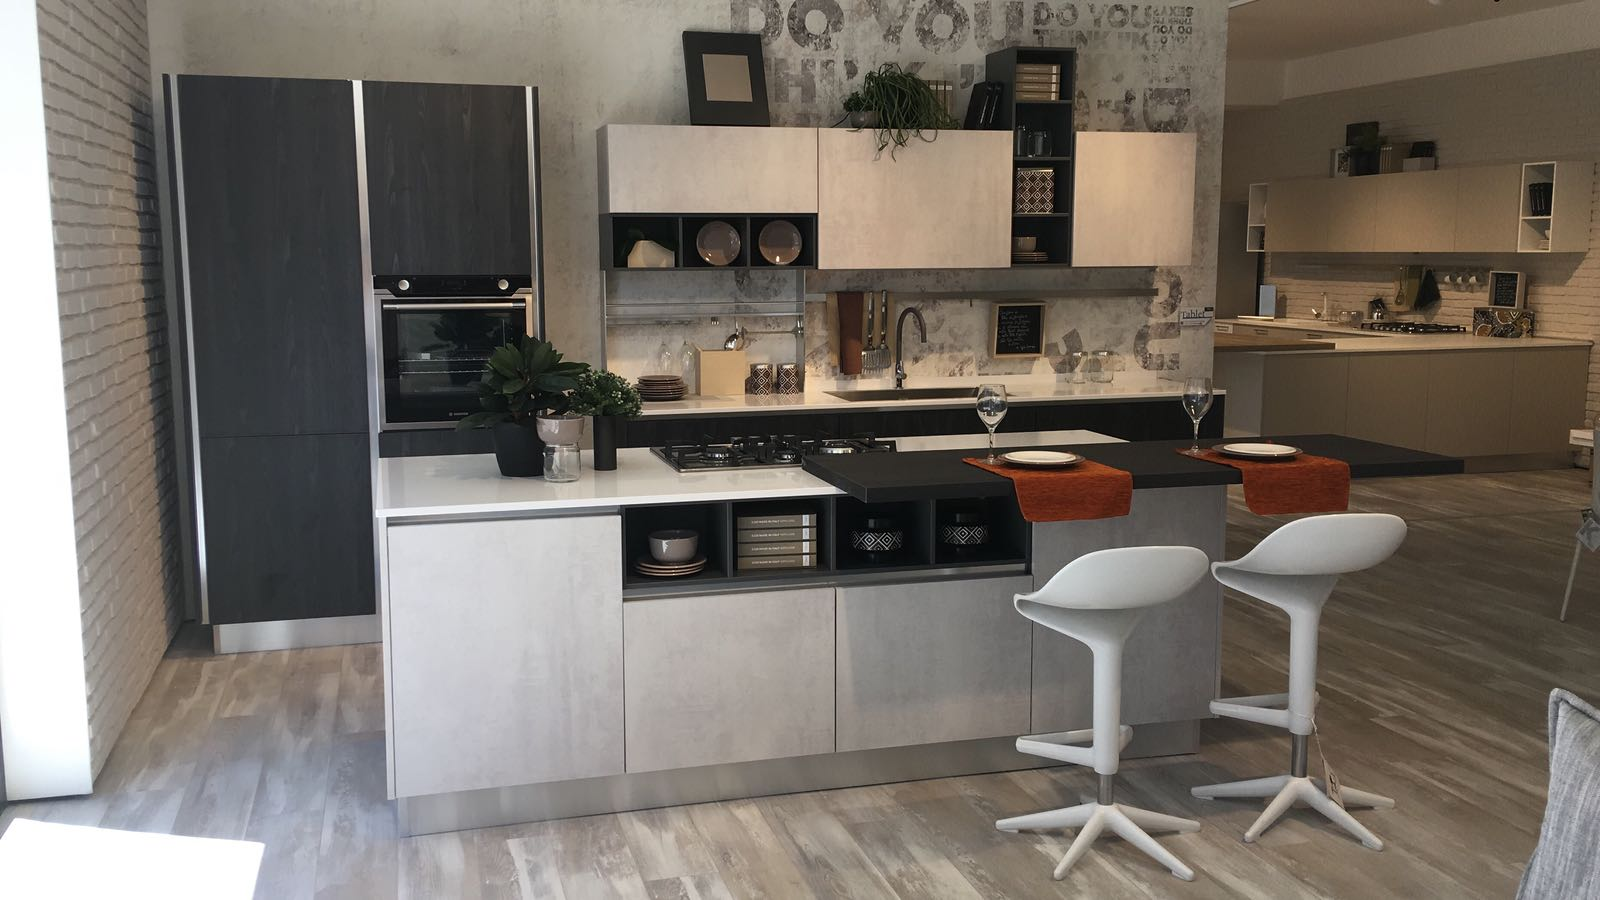 ... Young CREO Kitchens Brand In Collaboration With The Mariano Monaco  Group, With Opening This Week Of The Stores In Montesilvano, In The Abruzzo  Region, ...